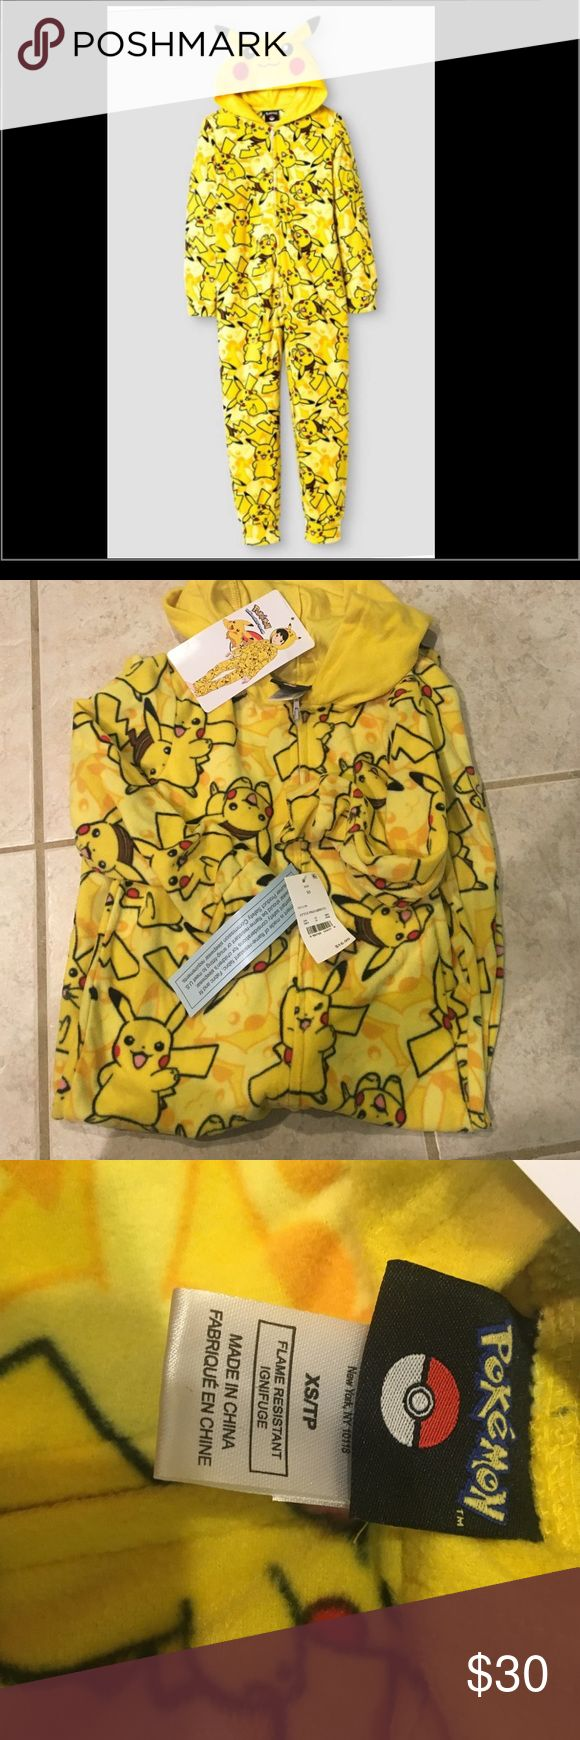 Sold out NWT Pokemon pikachu pajamas size xs 4/5 Bought these for my son- they didn't fit and I forgot to return them! These are NWT, tried on for a second and taken directly off. Sold out completely at Target in all sizes- perfect Christmas gift for your Pokemon lover! Pokemon Pajamas